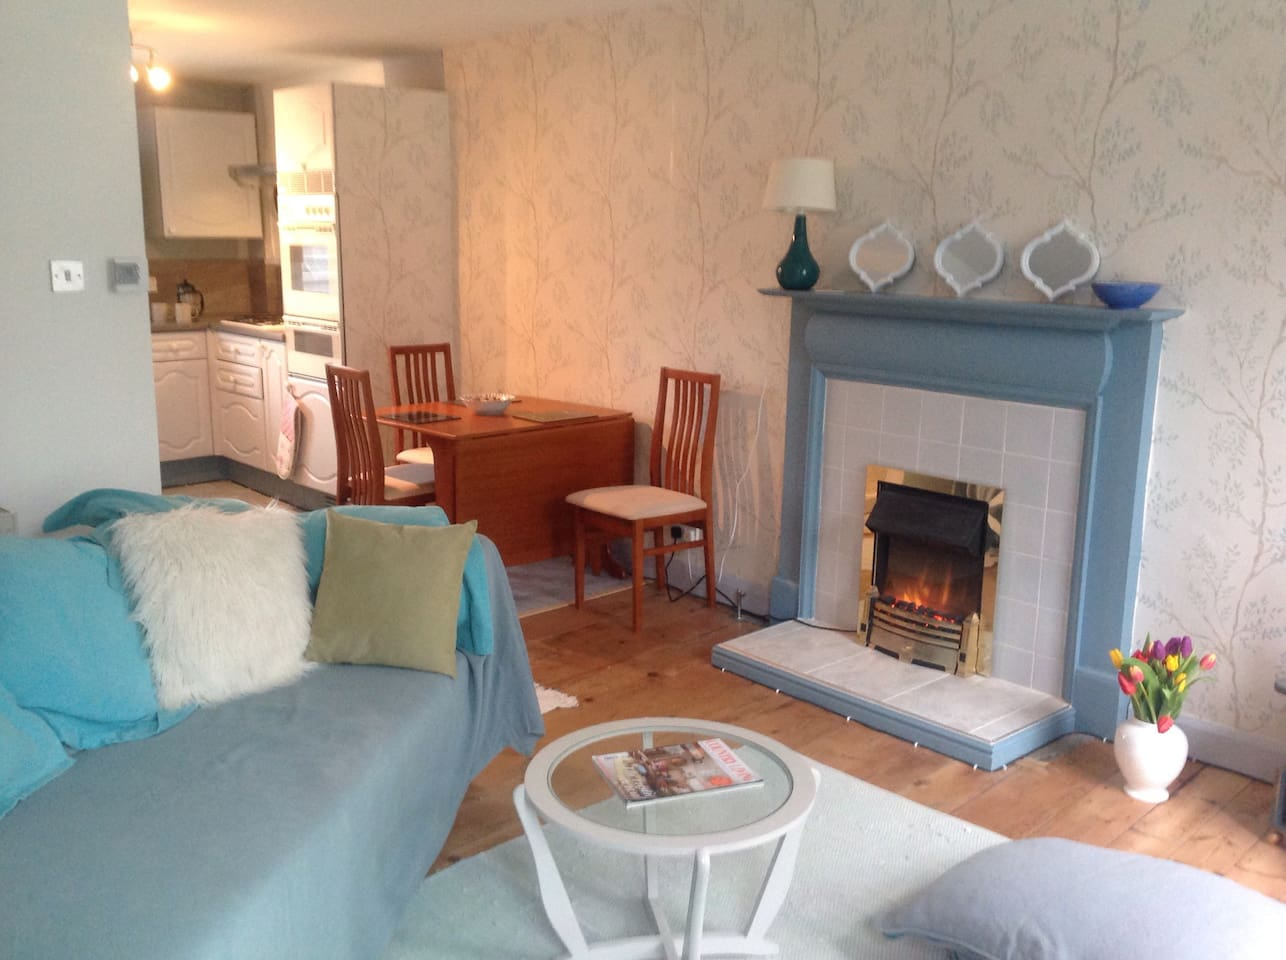 town view apartment townhouses for rent in ulverston cumbria